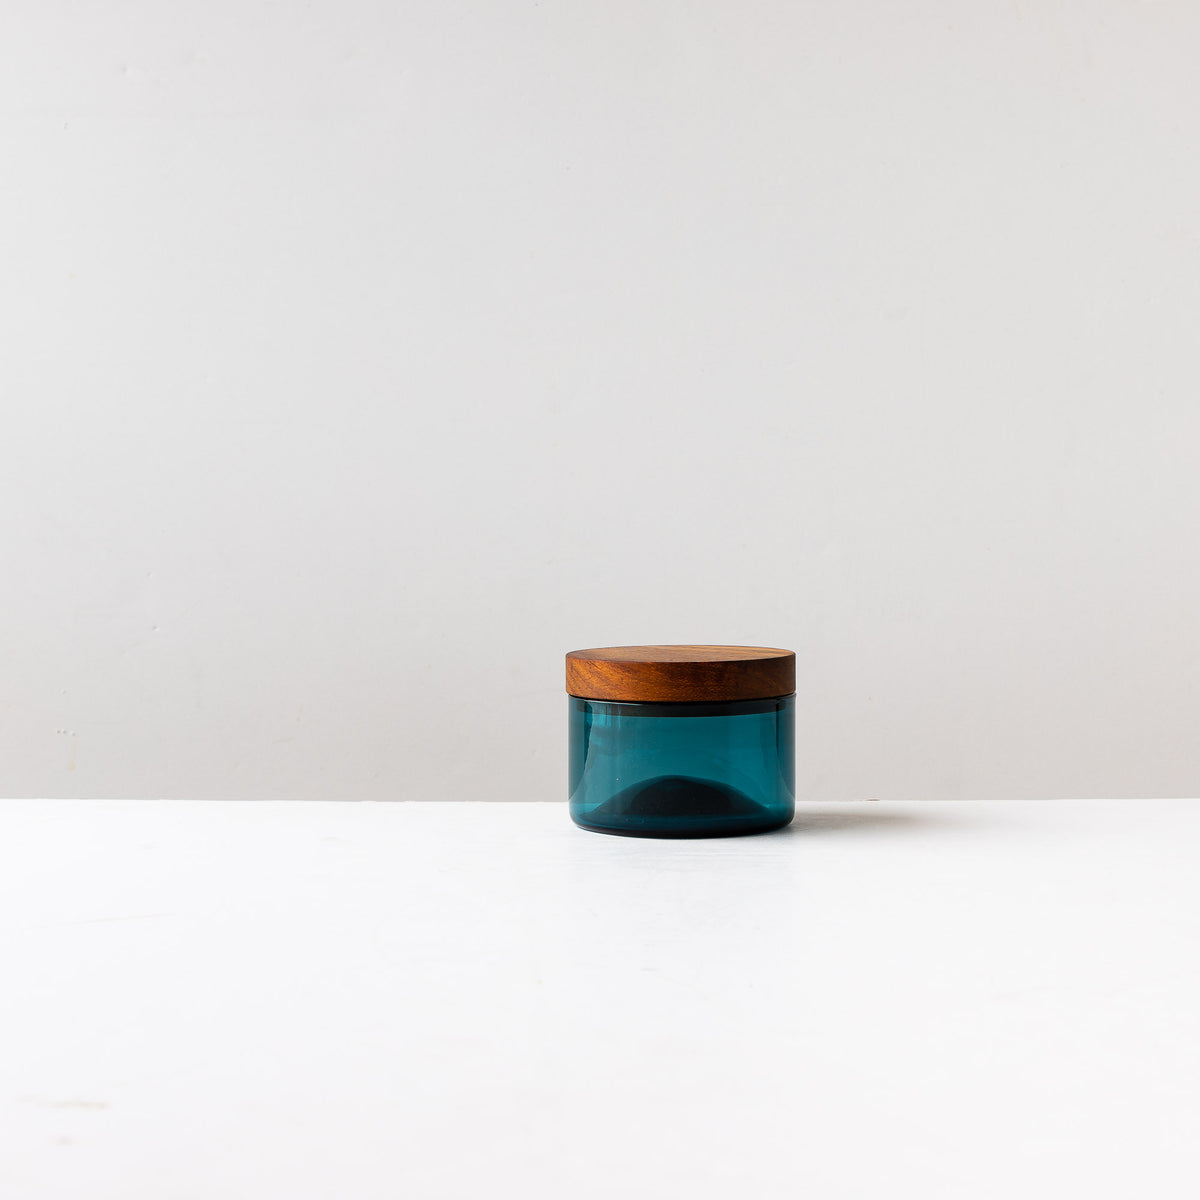 Blue Hand-blown Salt Cellar With Black Walnut Cover - Sold by Chic & Basta